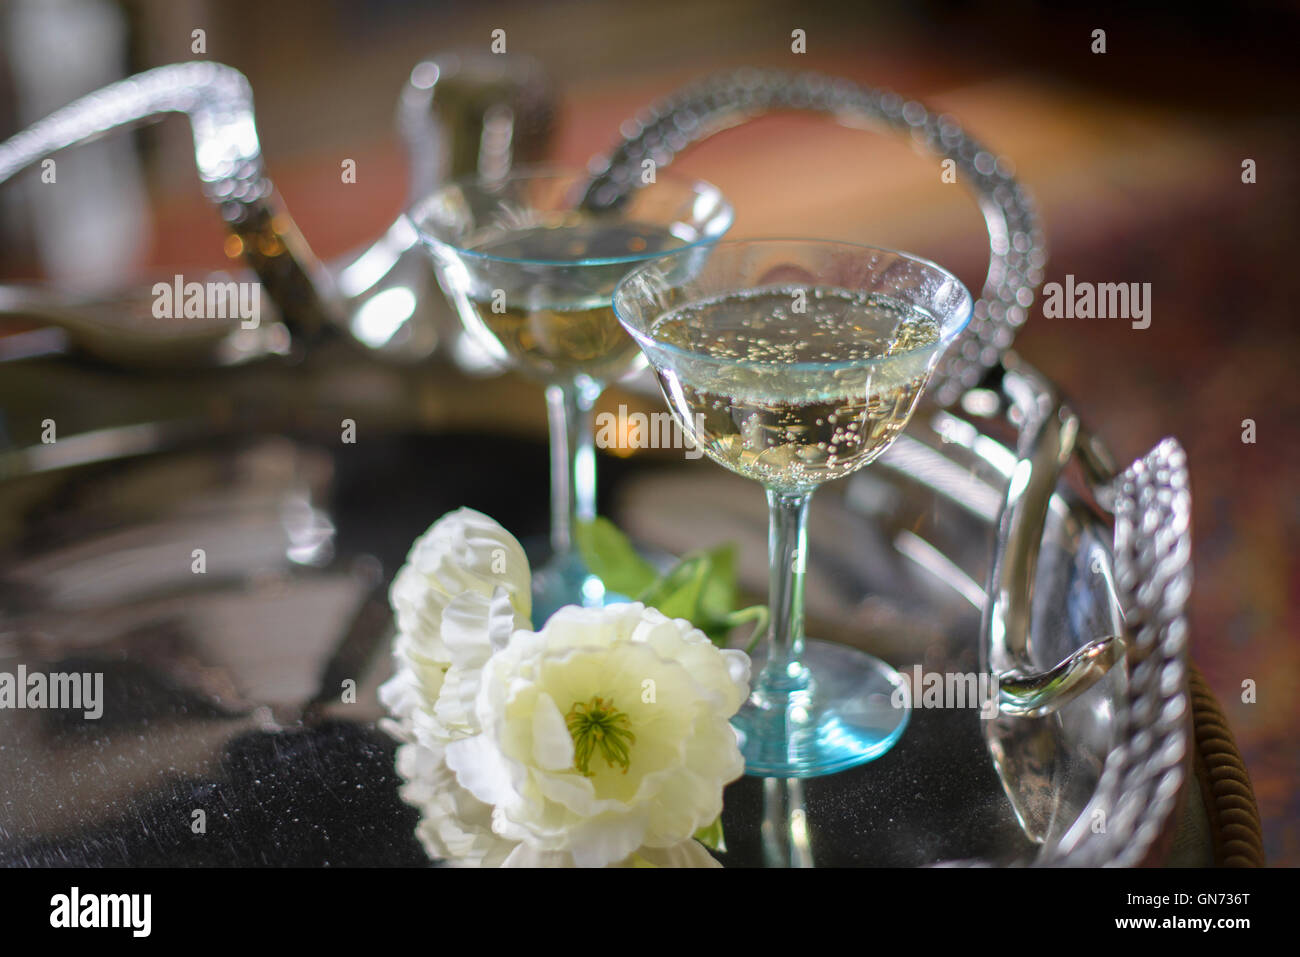 Champagne glasses on a silver serving tray - Stock Image